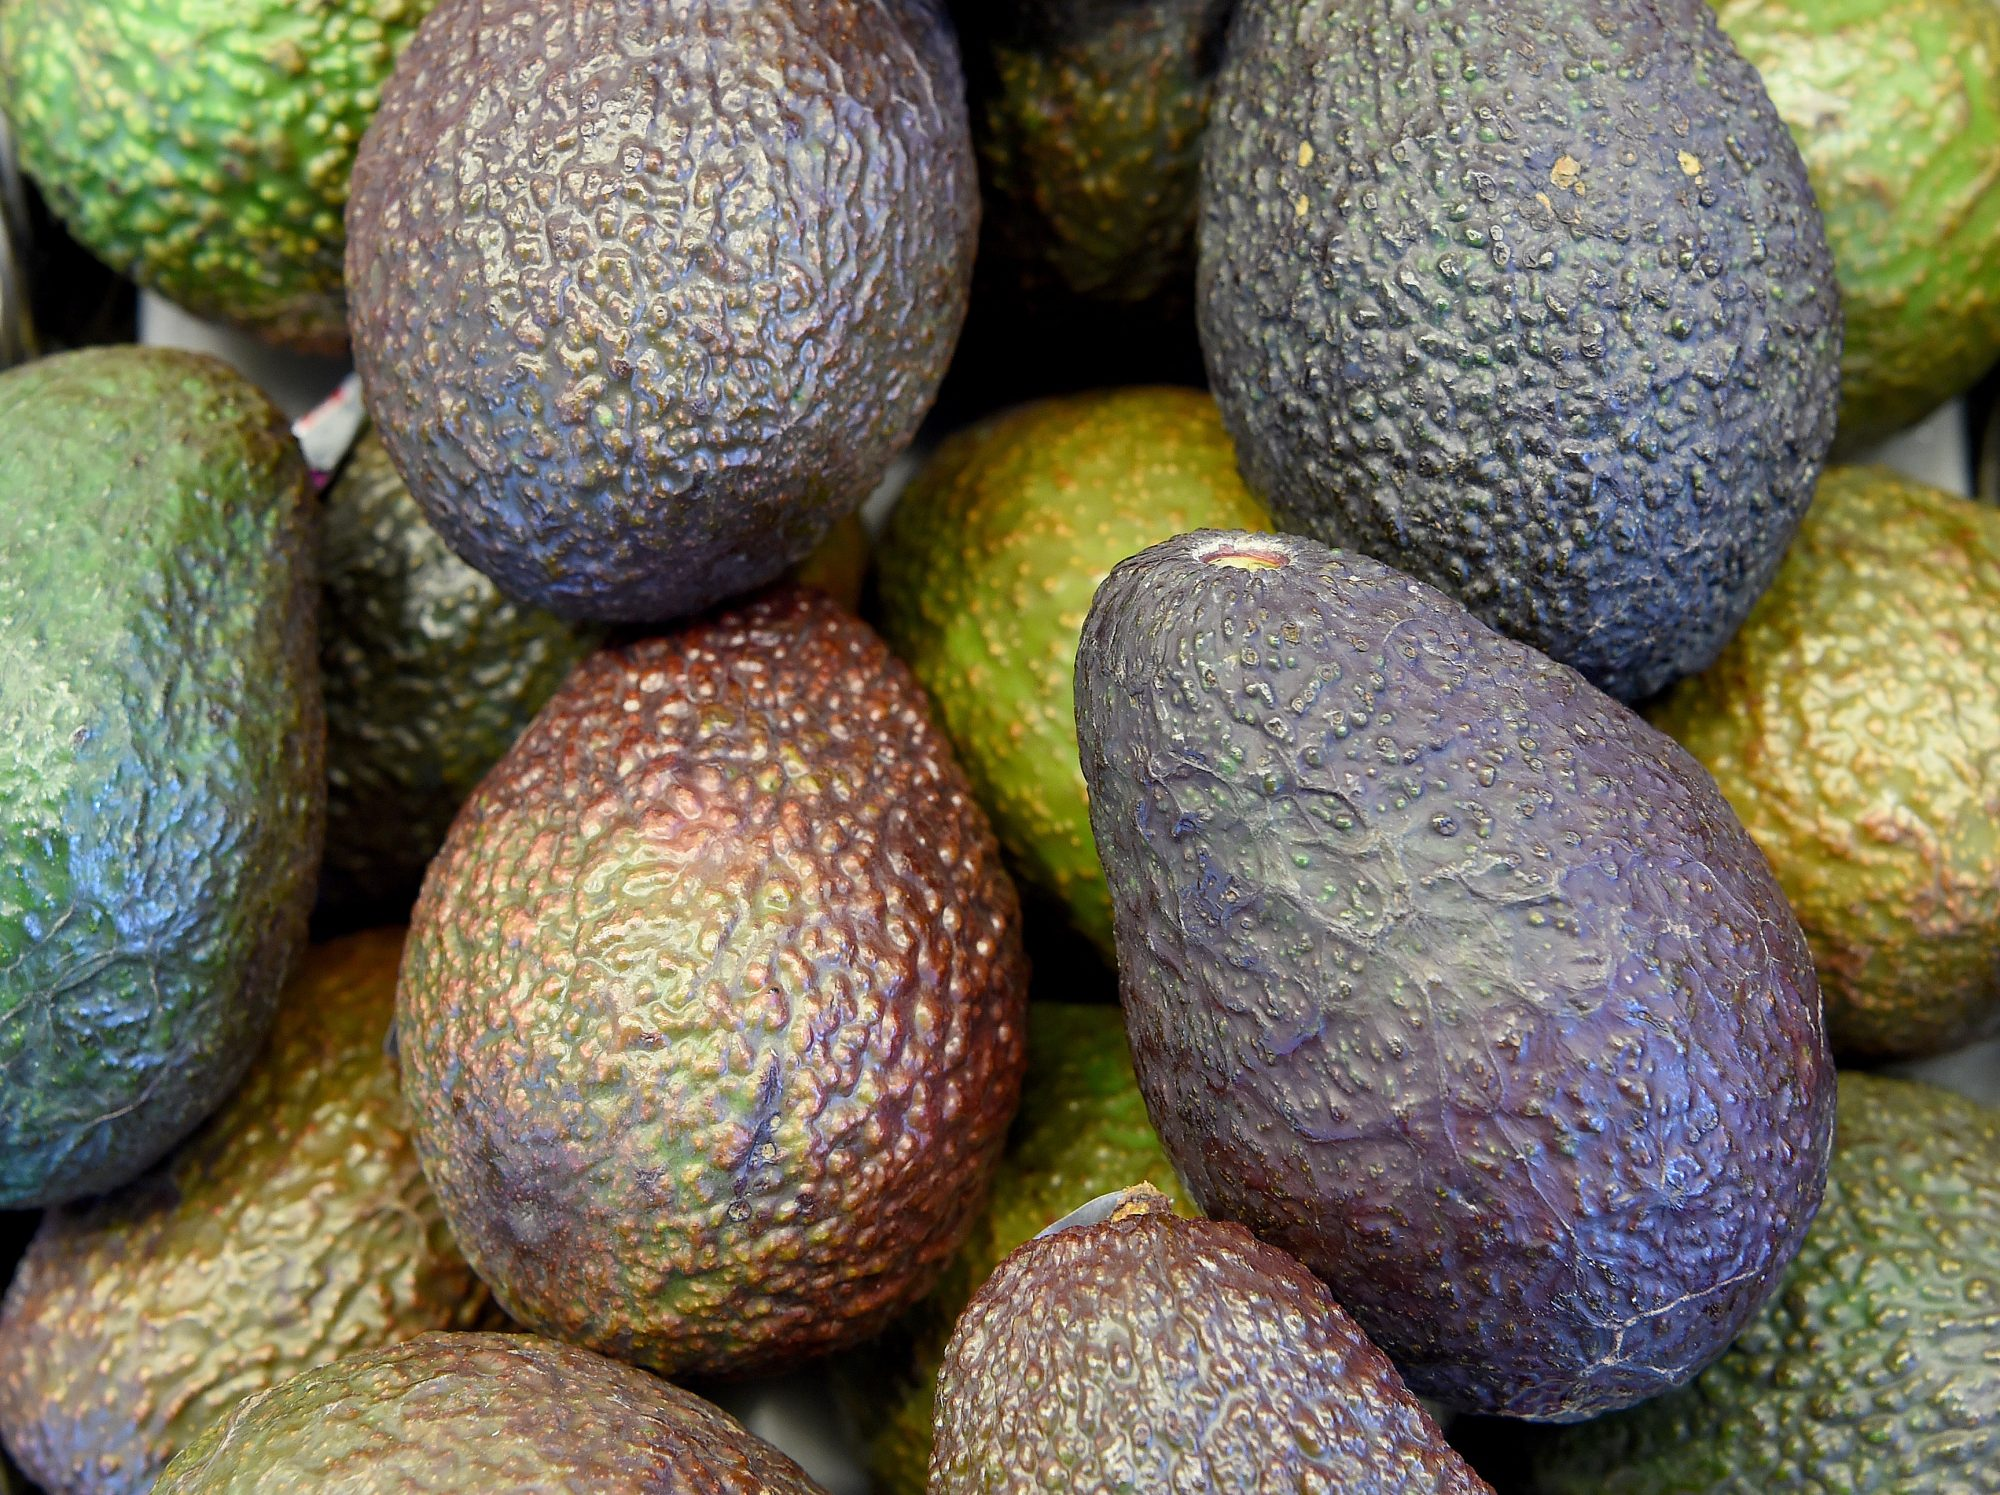 New Zealand Hit With an Avocado Crime Spree